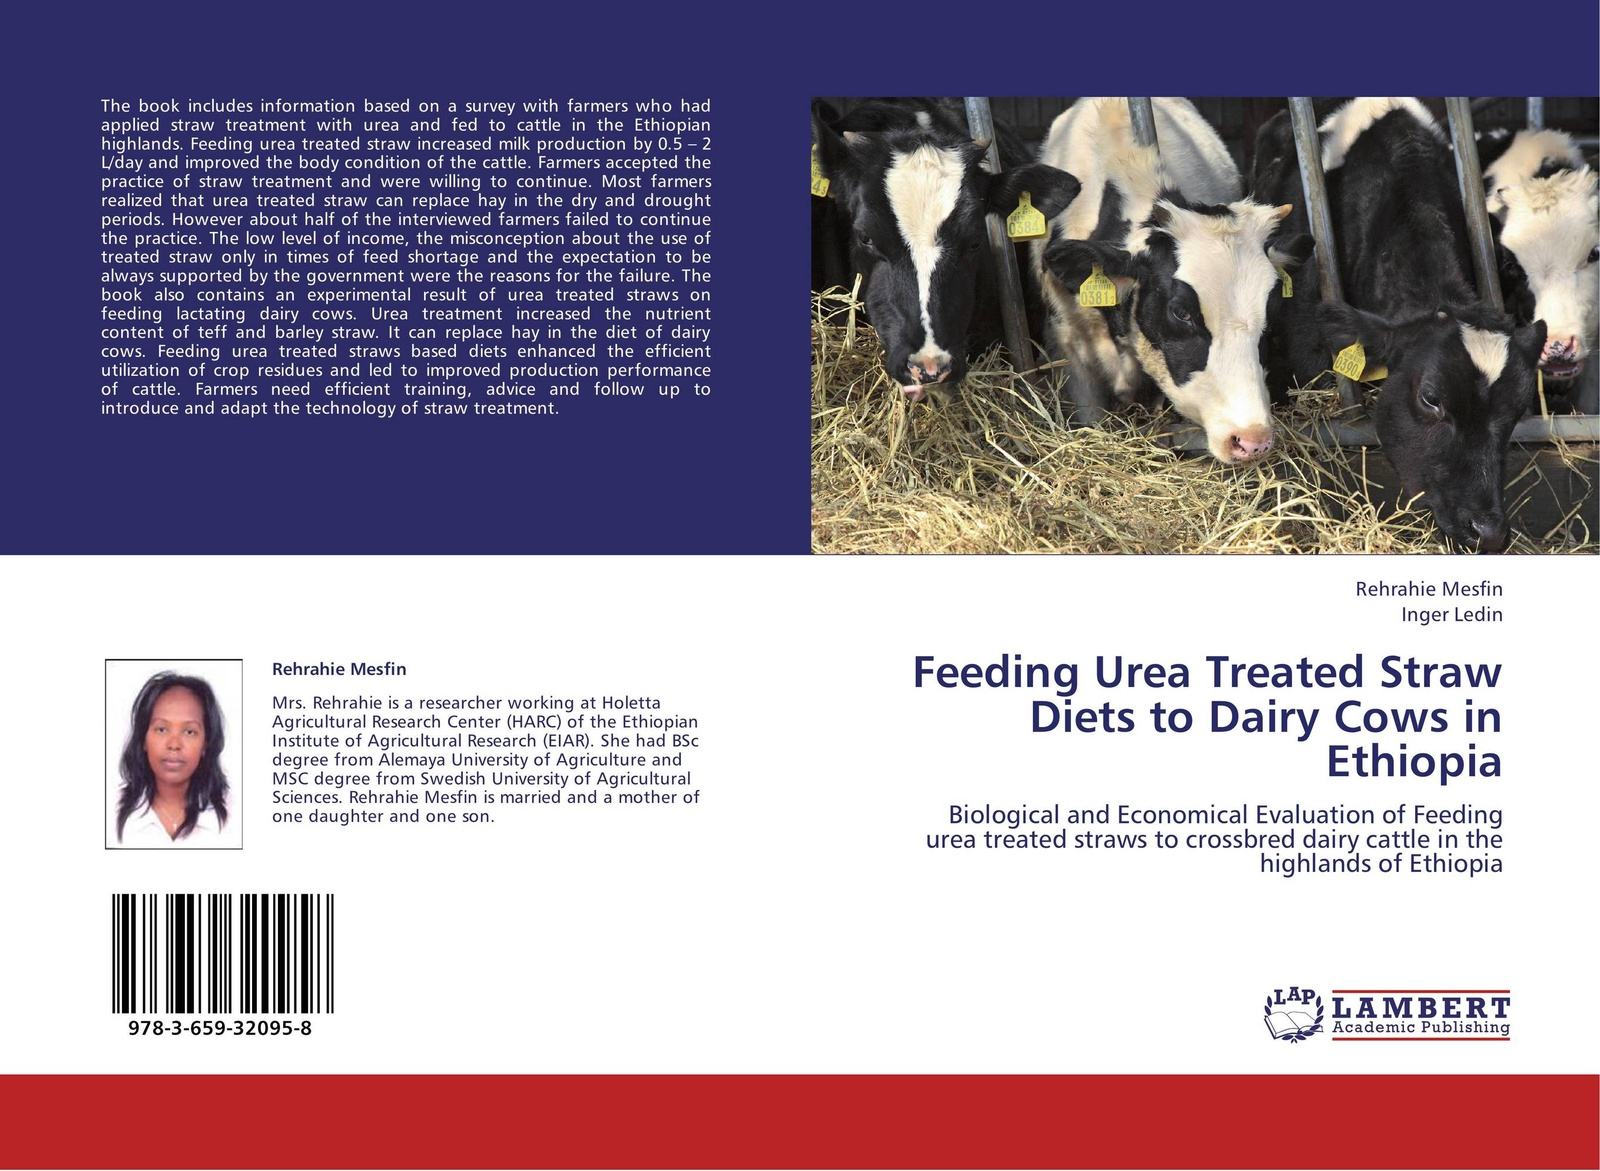 Rehrahie Mesfin and Inger Ledin Feeding Urea Treated Straw Diets to Dairy Cows in Ethiopia цена